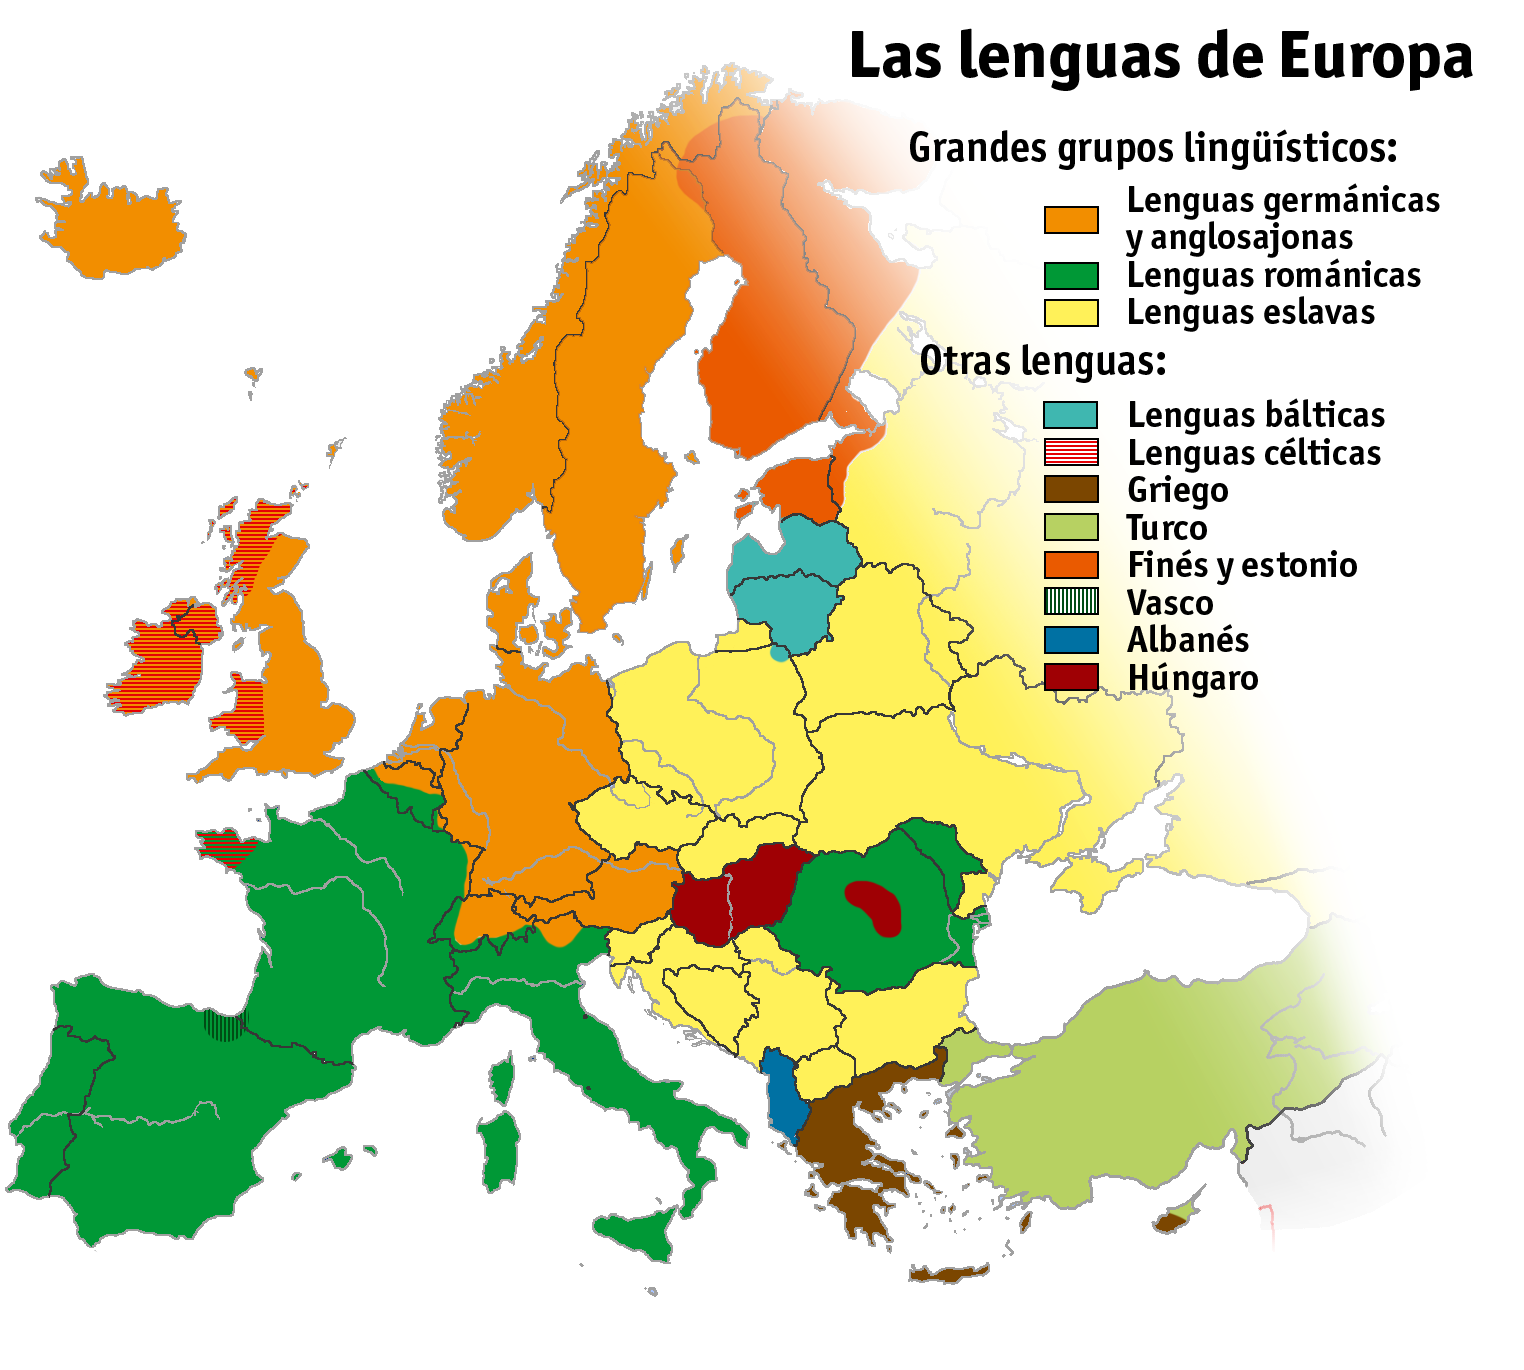 Las lenguas de Europa